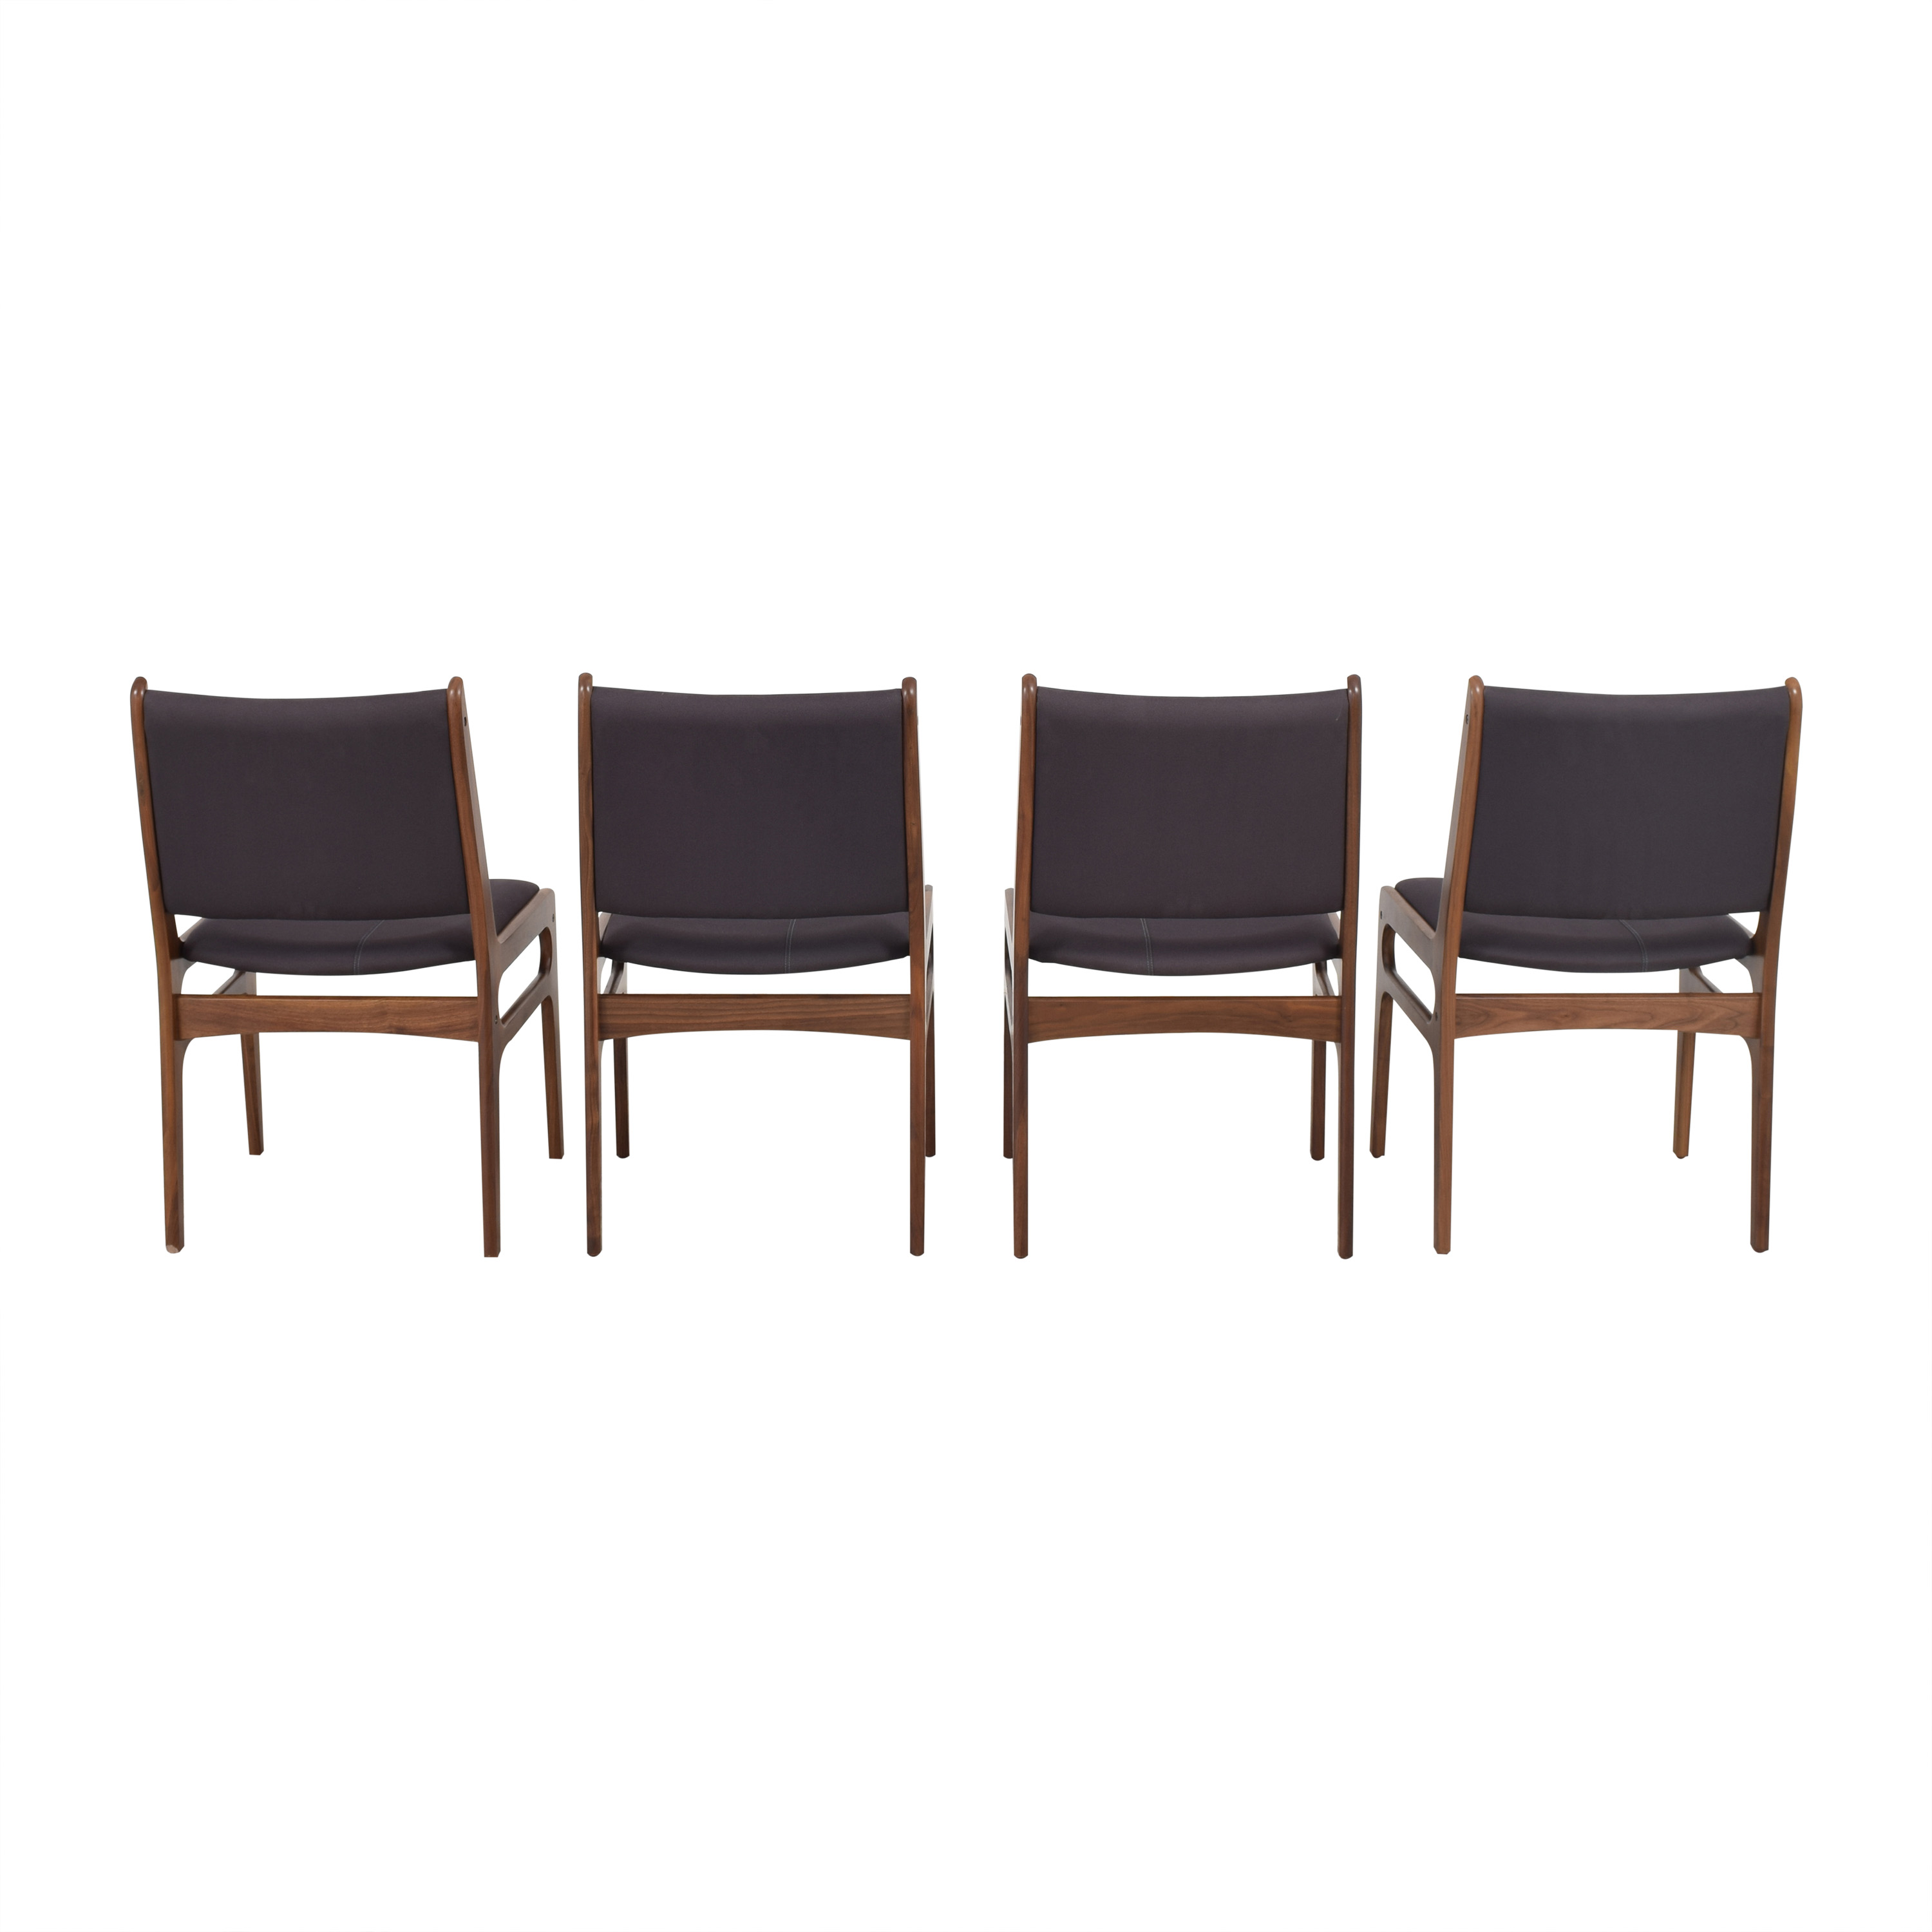 Four Hands Four Hands Bina Side Dining Chairs discount